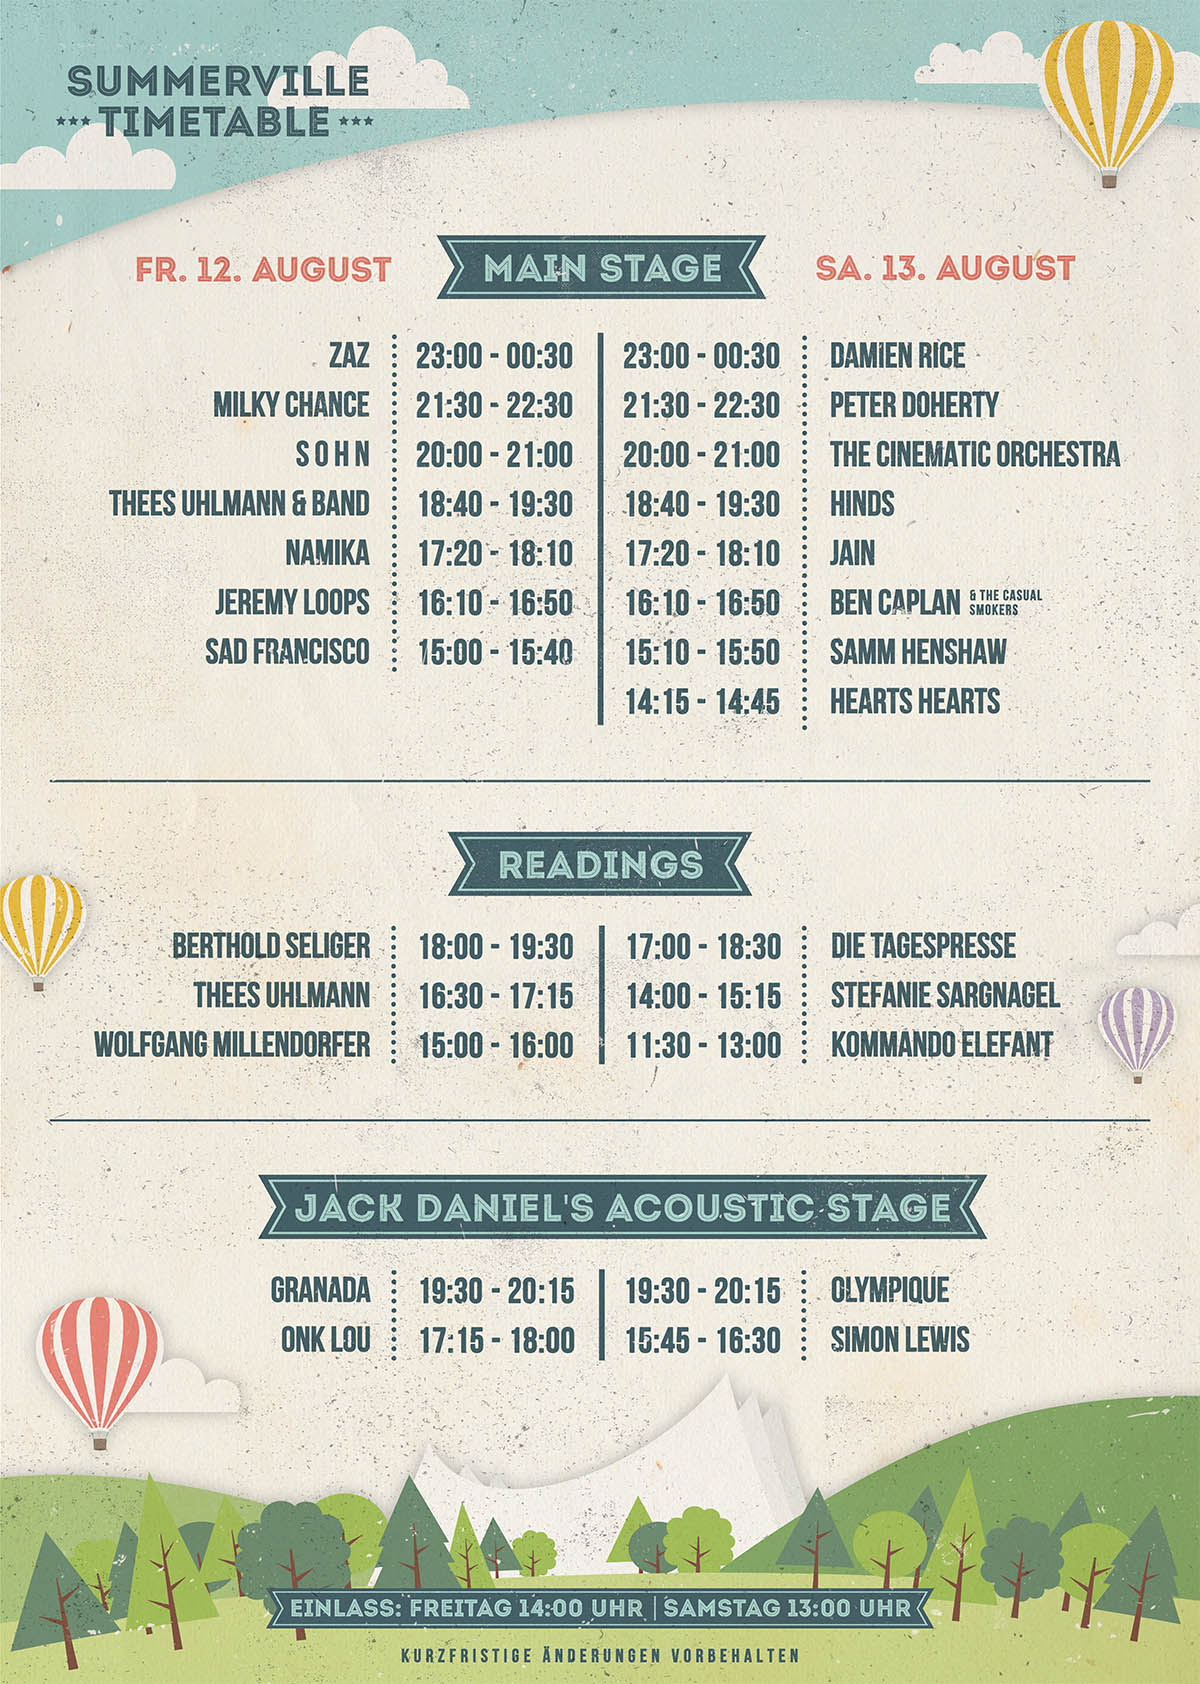 Summerville Wiesen 2016 - Timetable